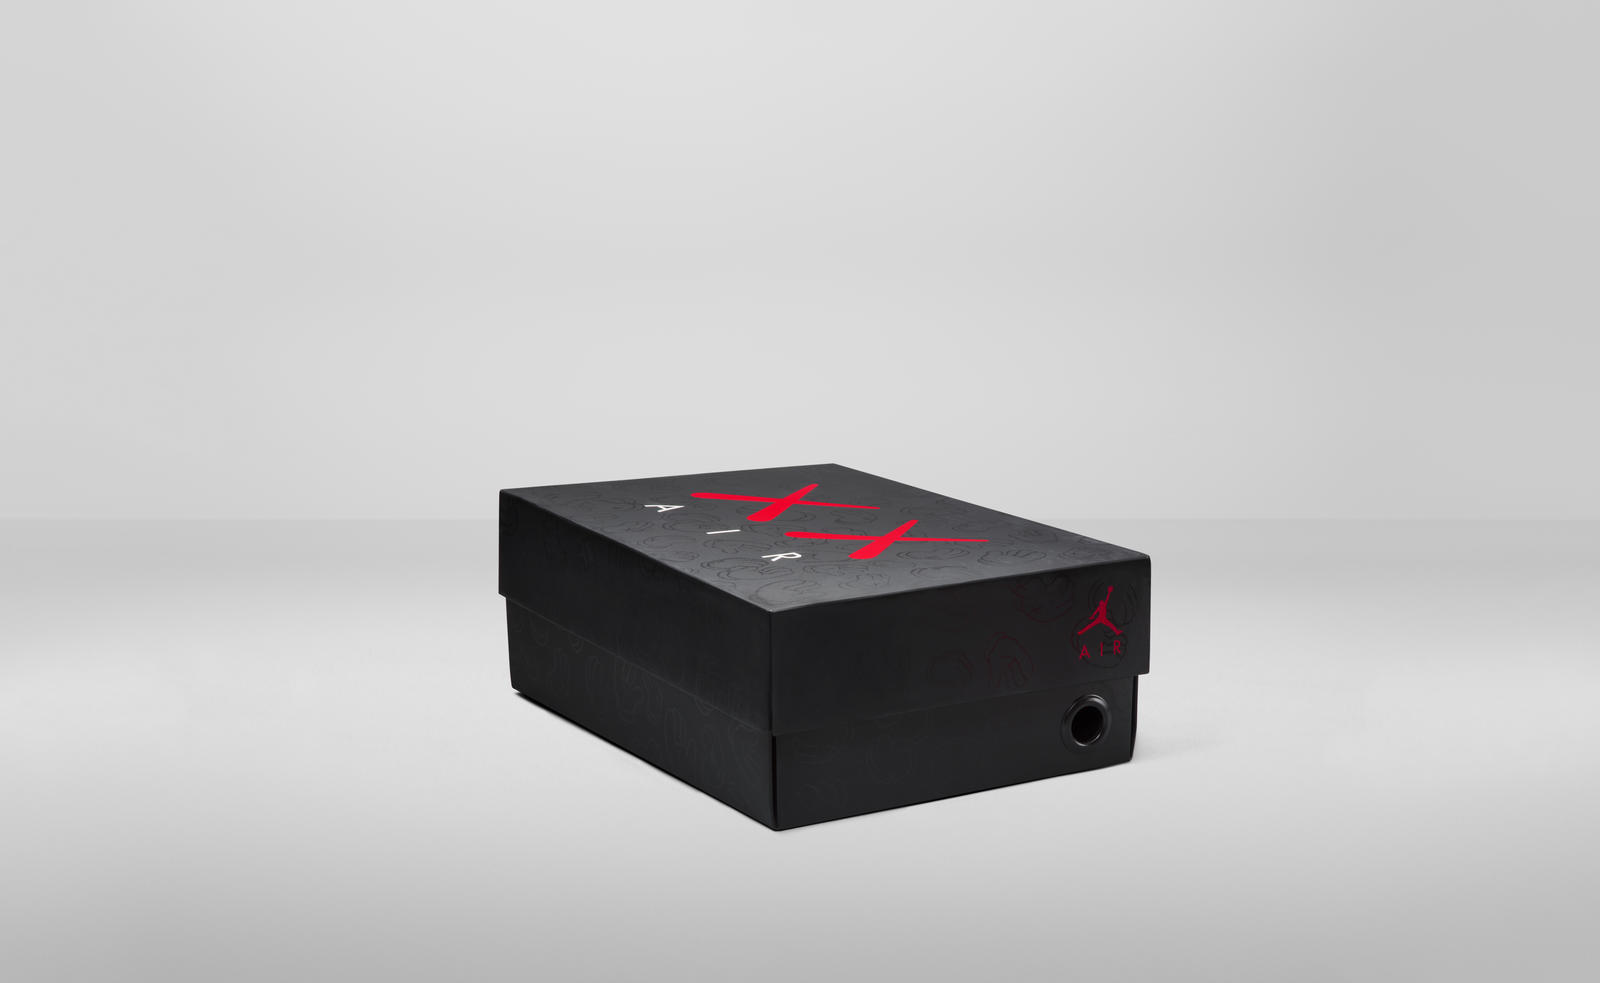 KAWS Jordan 4 RETRO Box Packaging